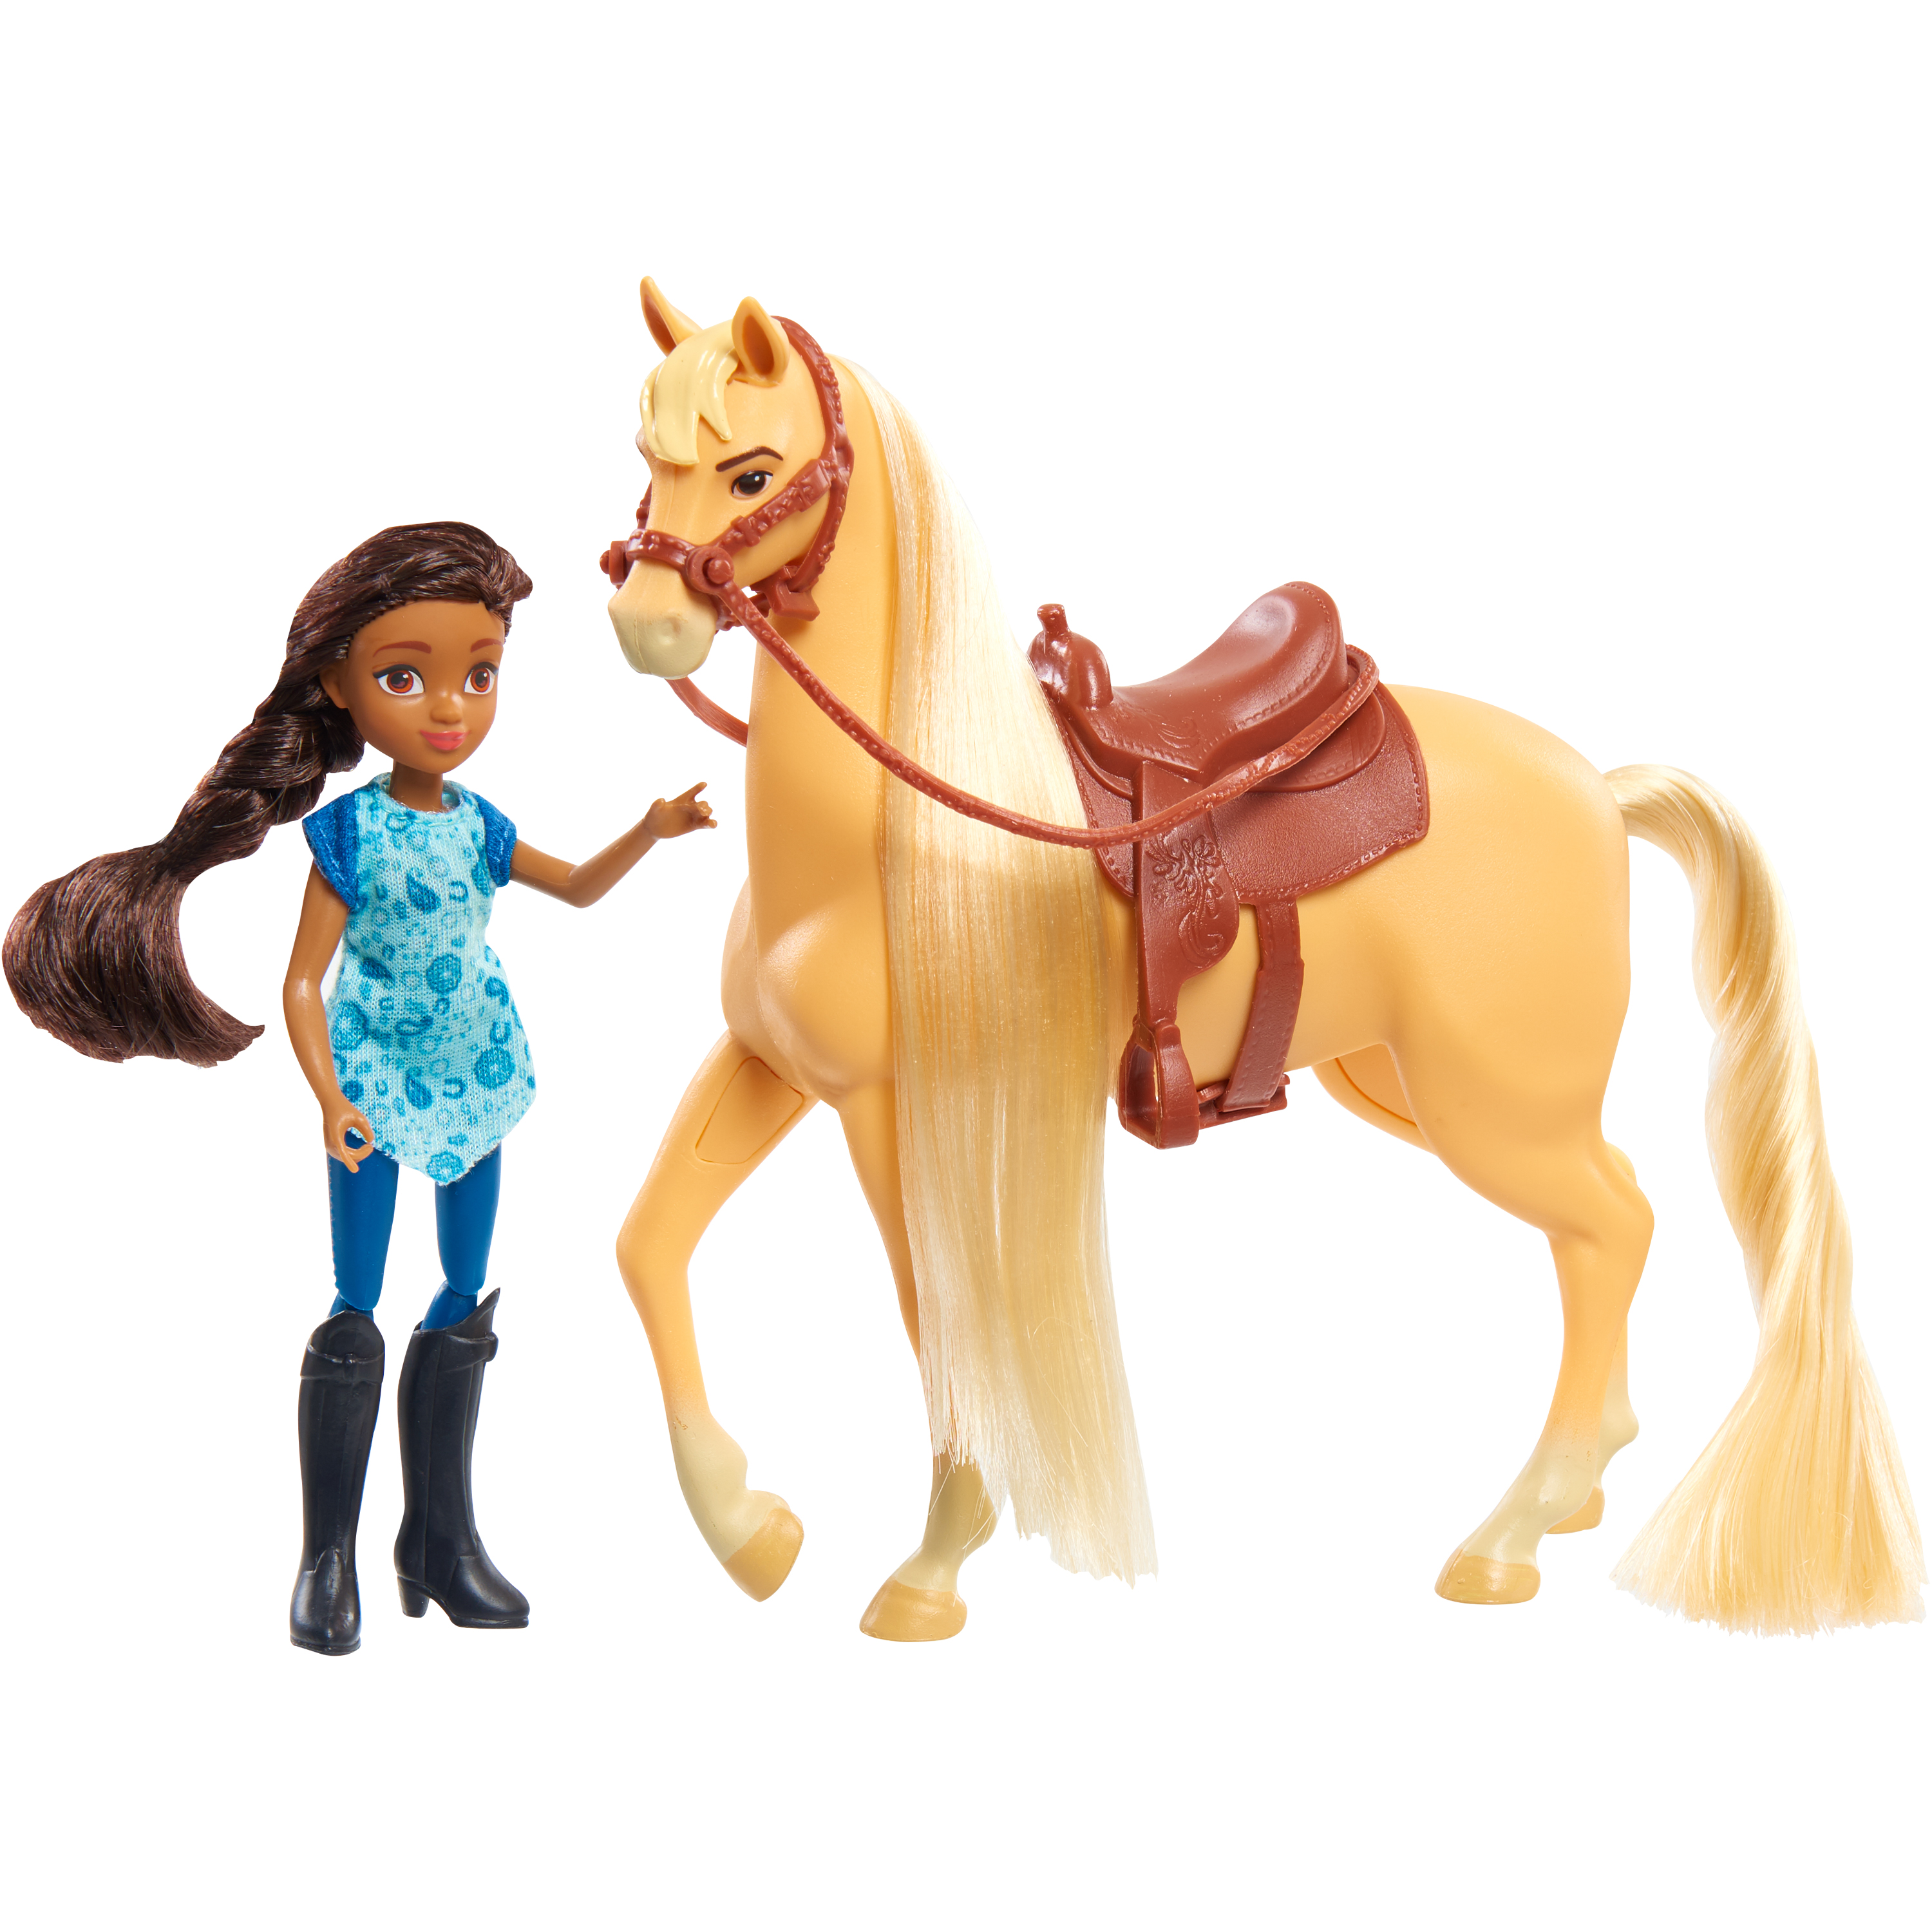 Spirit riding free collector's series doll & horse set - pru and chica linda